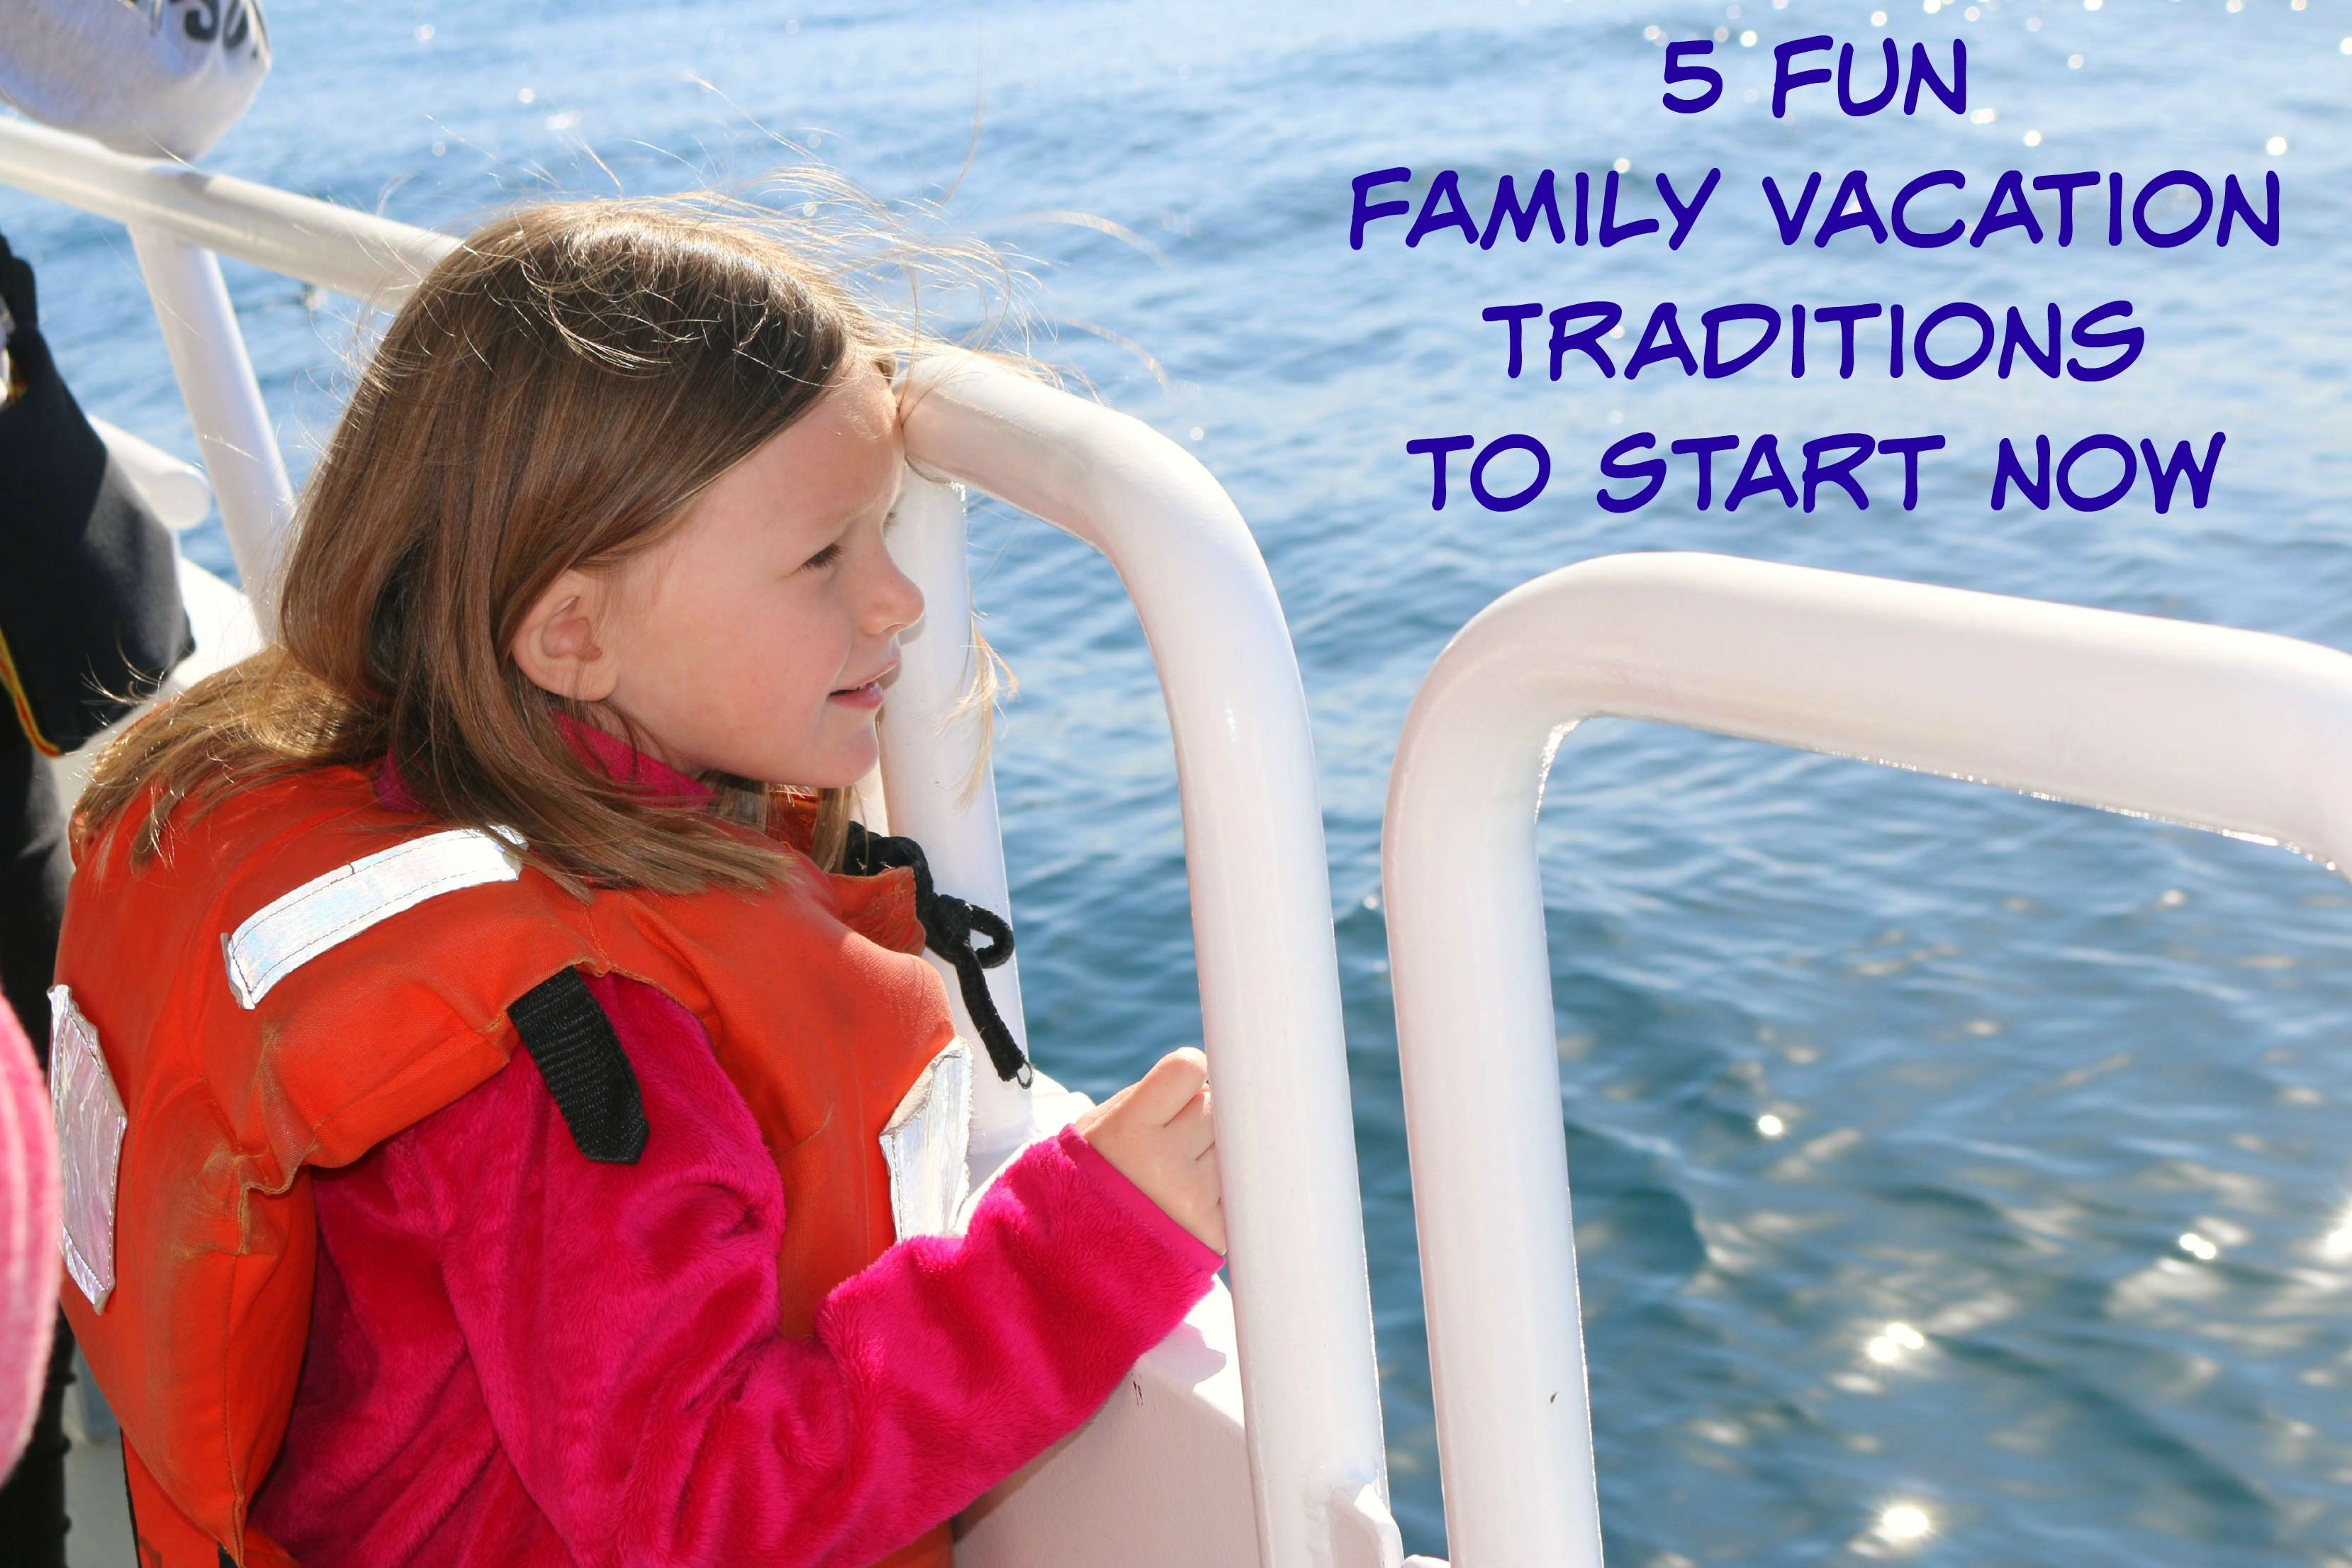 Five Fun Family Vacation Traditions to Start Now